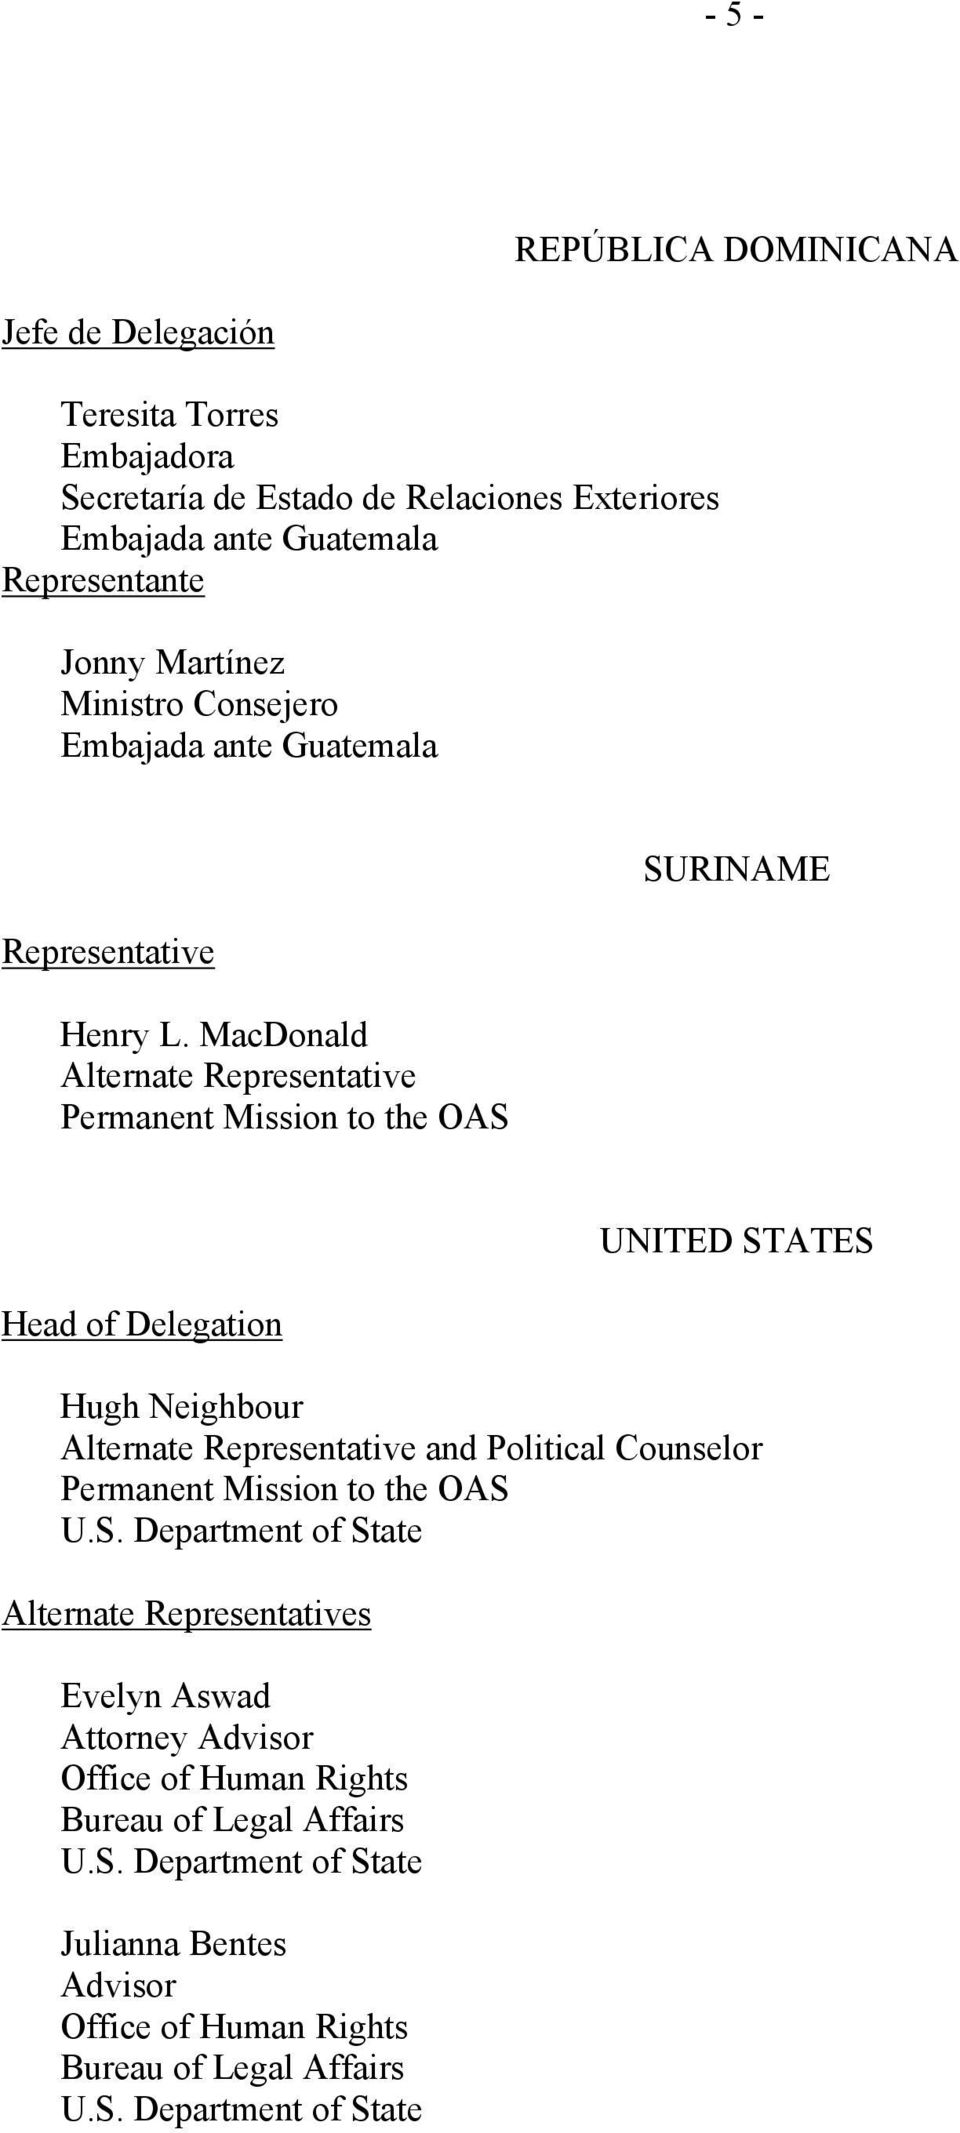 MacDonald Alternate Representative Permanent Mission to the OAS SURINAME Head of Delegation UNITED STATES Hugh Neighbour Alternate Representative and Political Counselor